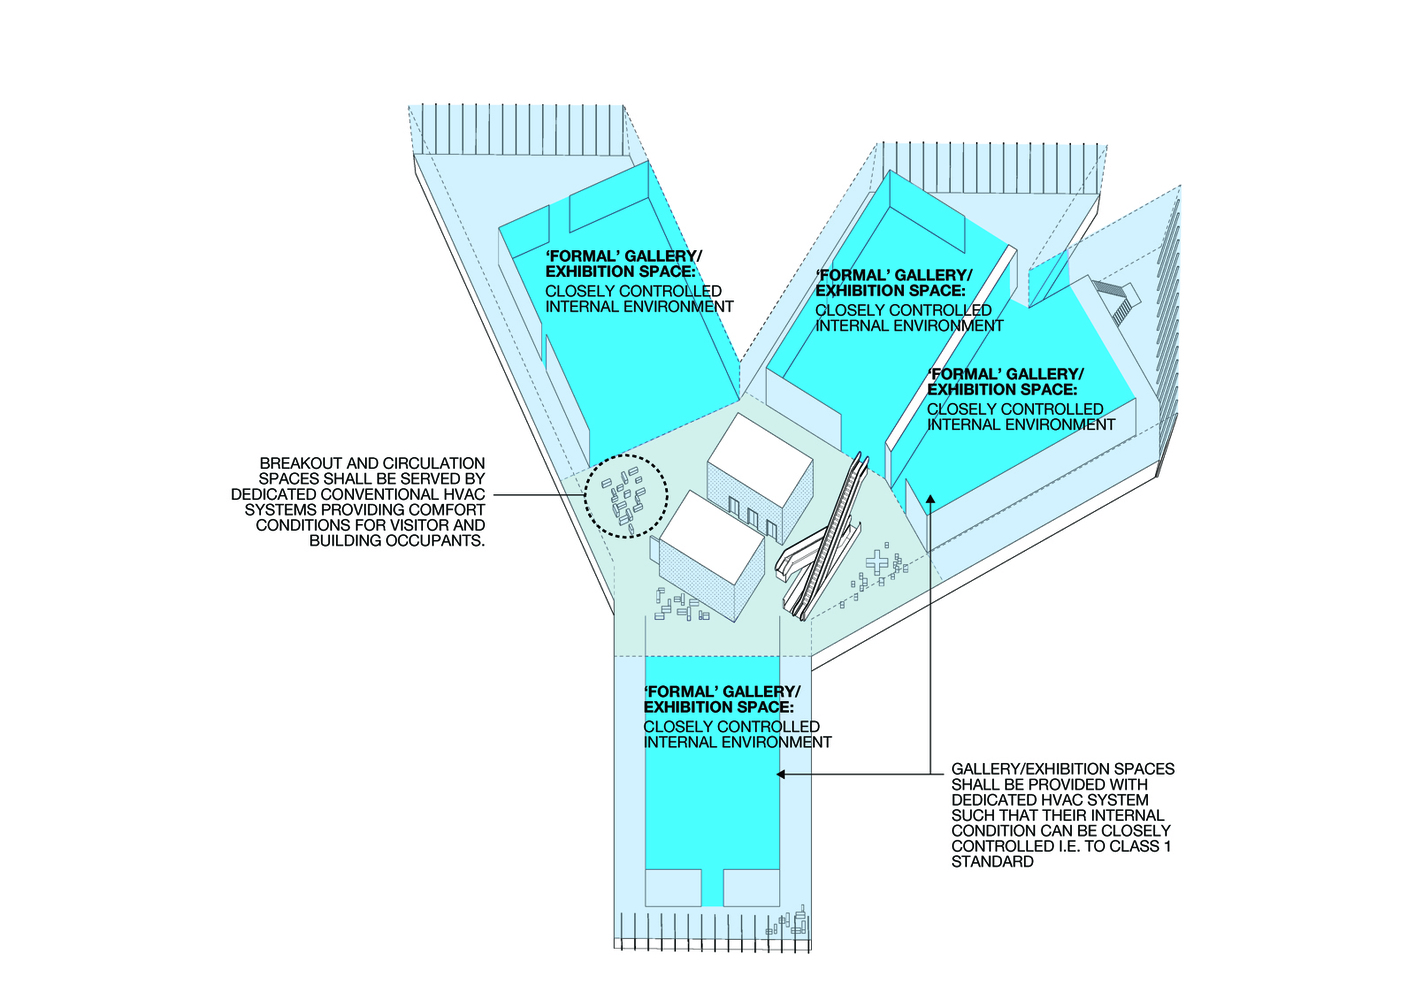 medium resolution of new taipei city museum of art proposal lyons hvac gallery compartments diagram